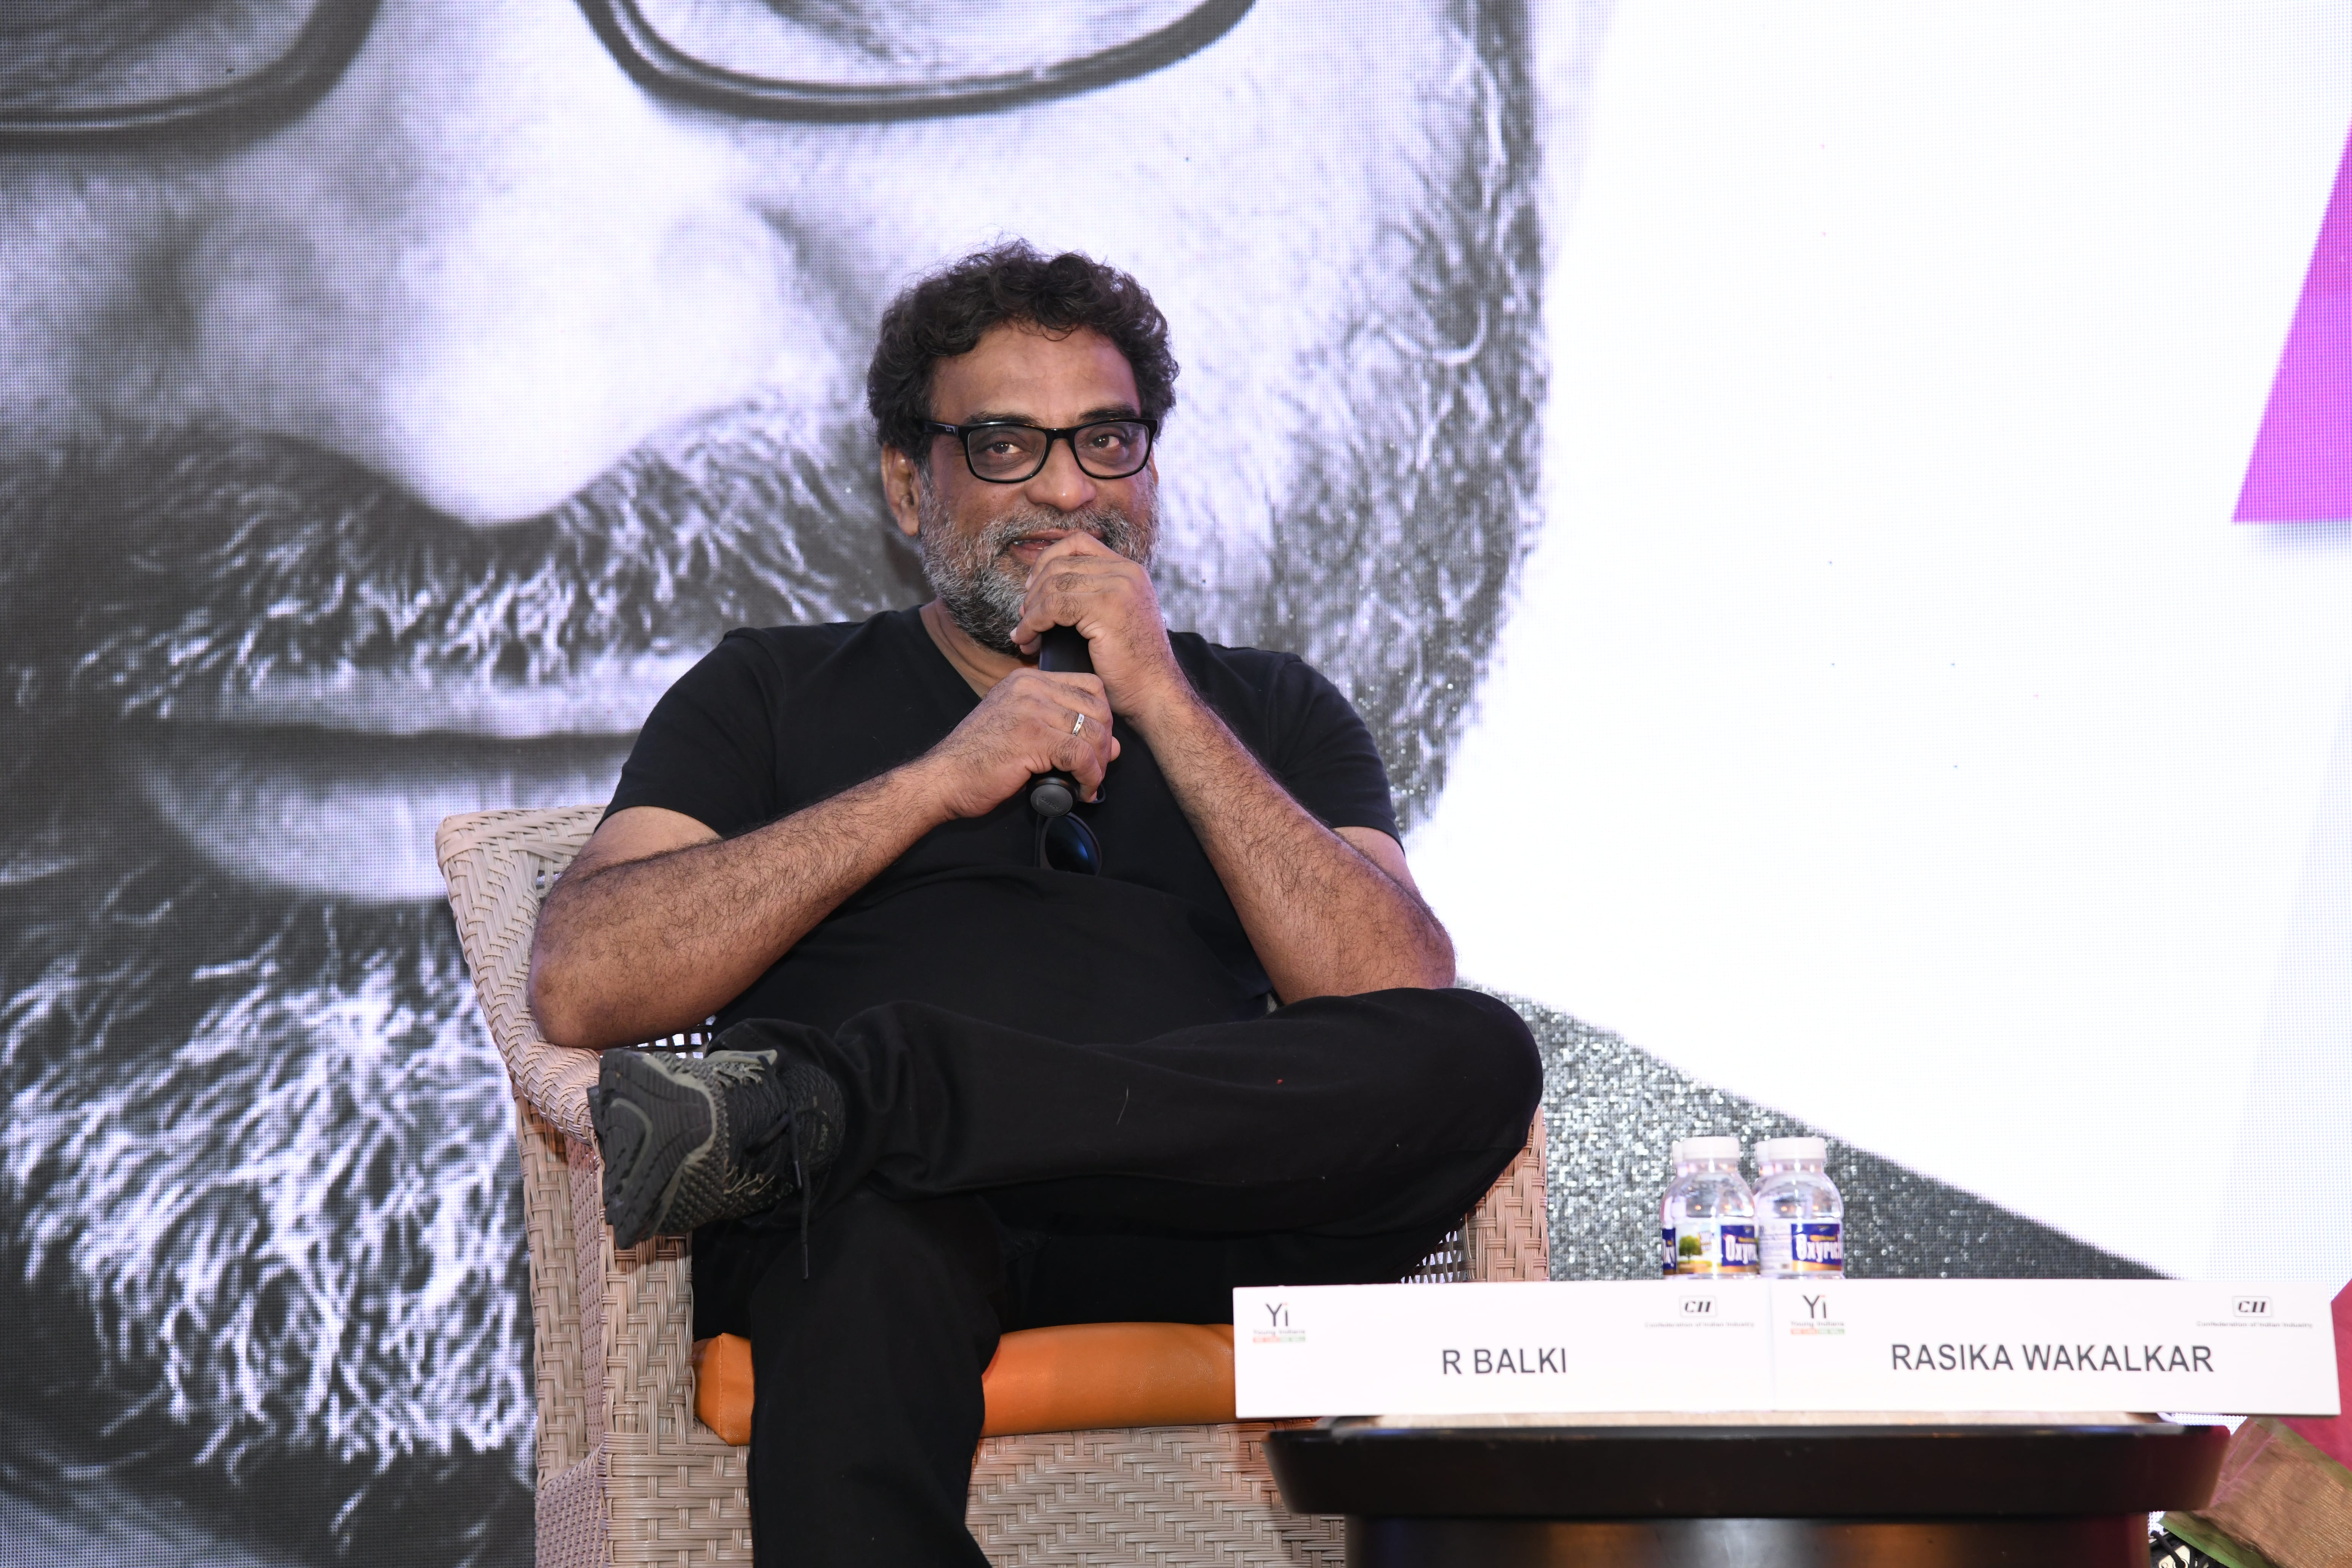 Mr R Balki, Film Maker, Screen Writer & AdGuru at Take Pride 2019